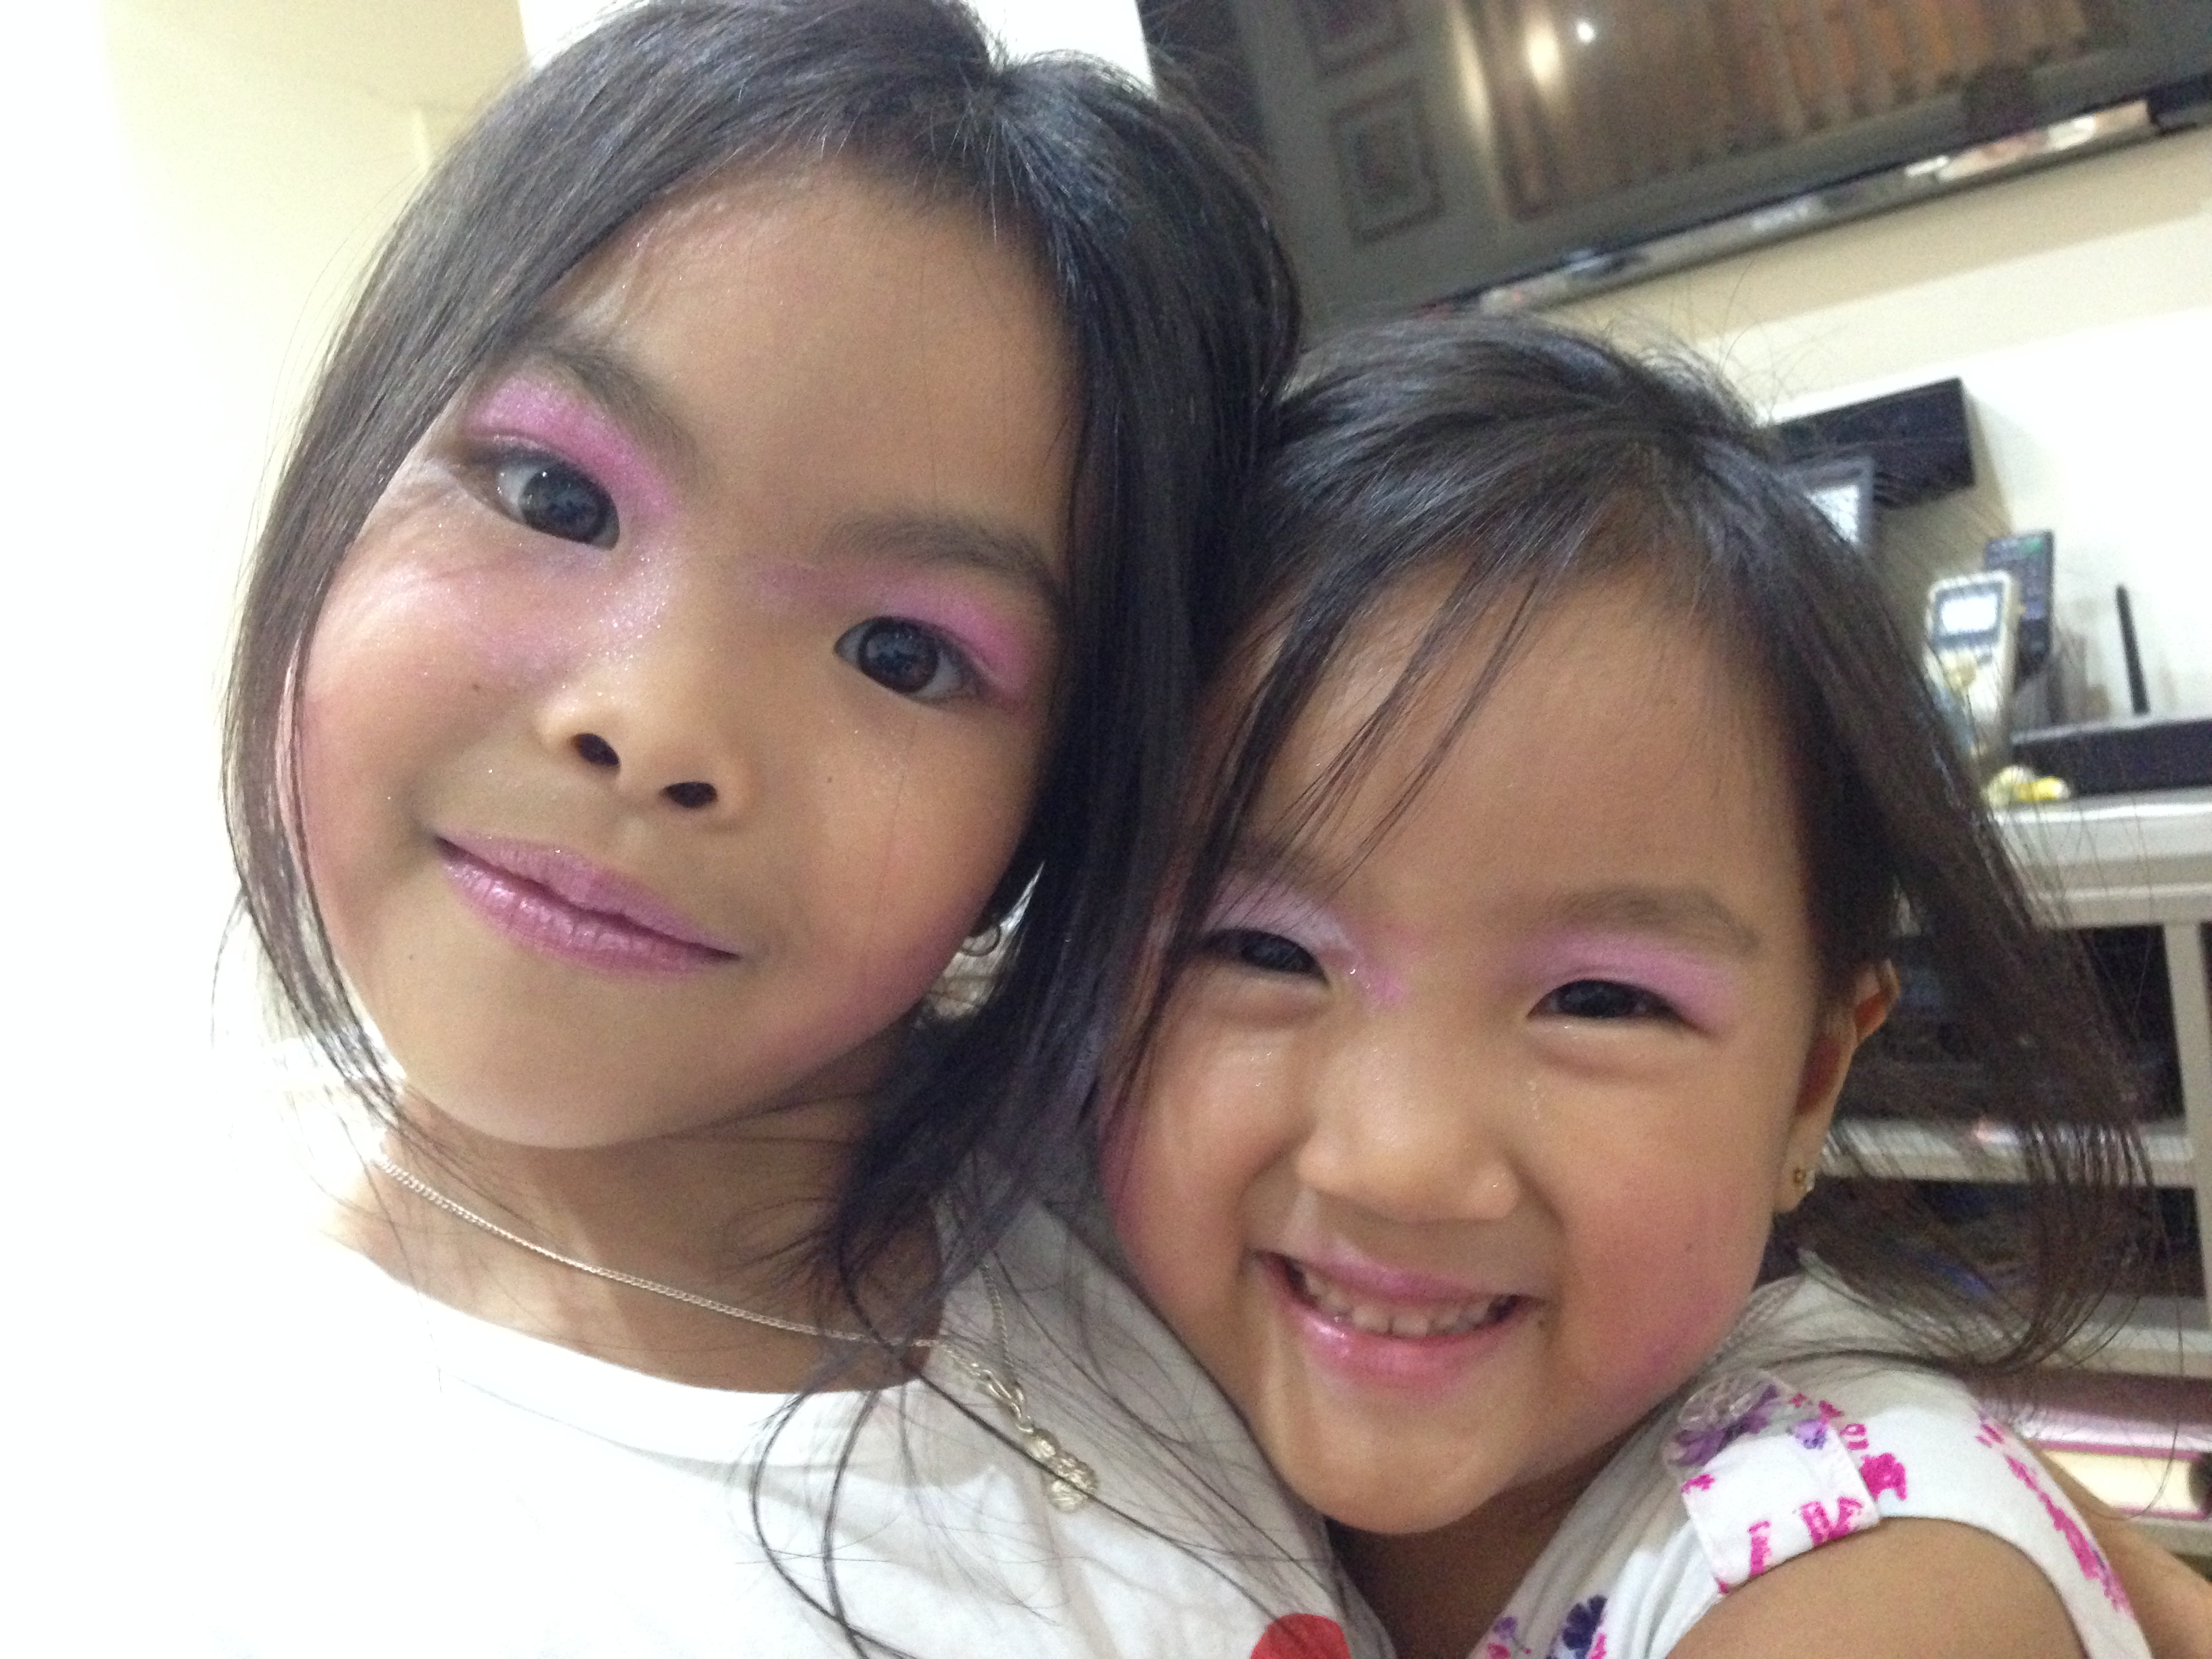 If you think the ingredients in adult makeup are scary, wait till you check out the kids makeup and face paints. Kids love to dress up, put makeup on and ...